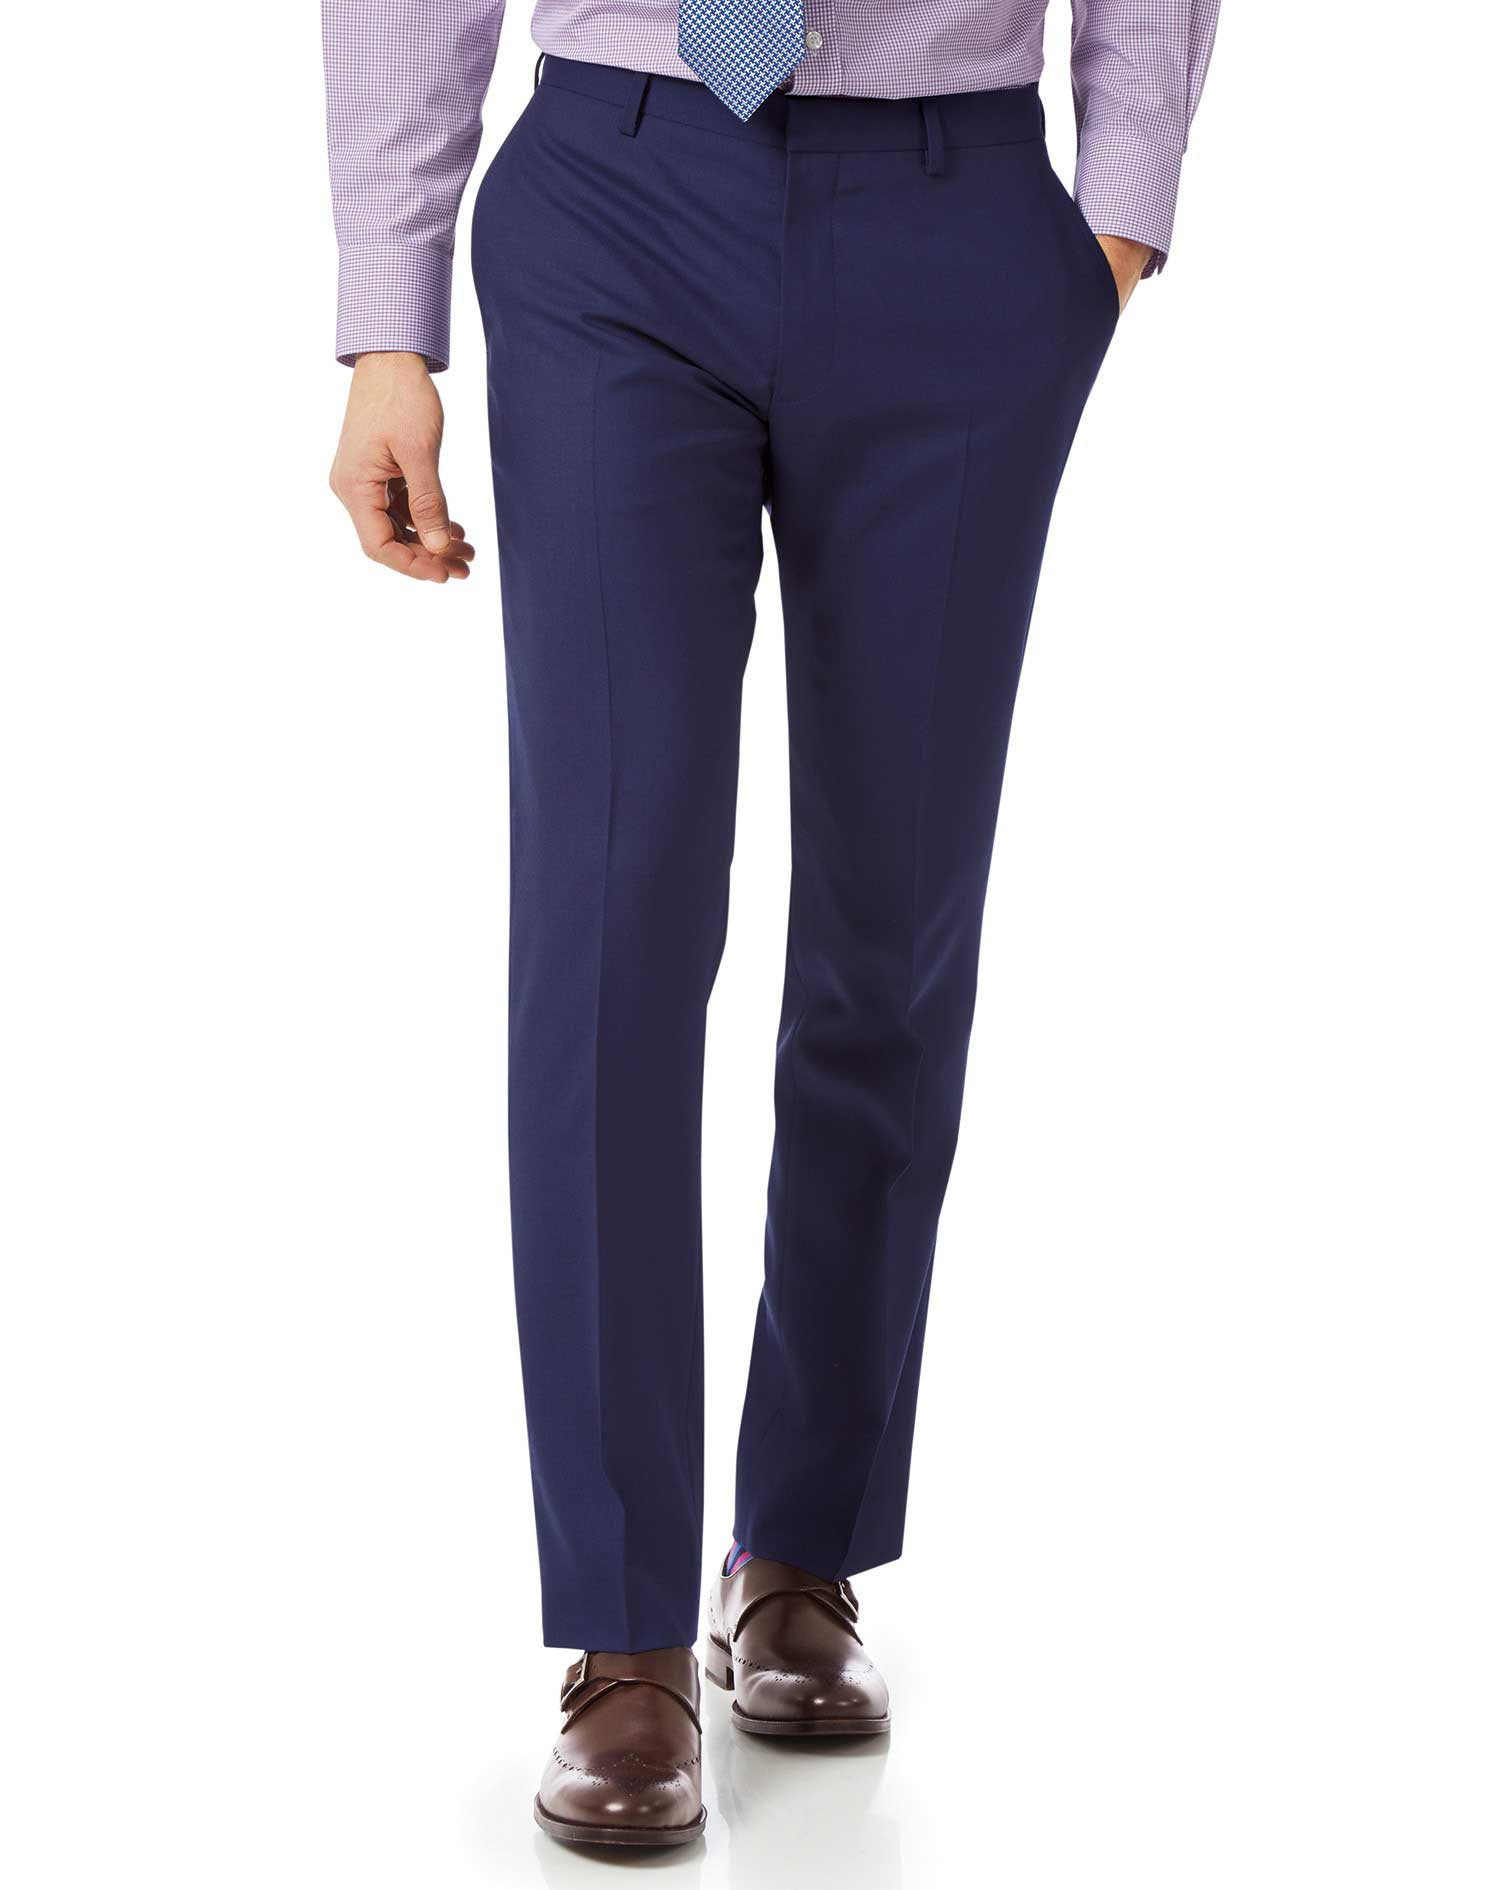 Royal Blue Slim Fit Merino Business Suit Trousers Size W34 L32 by Charles Tyrwhitt